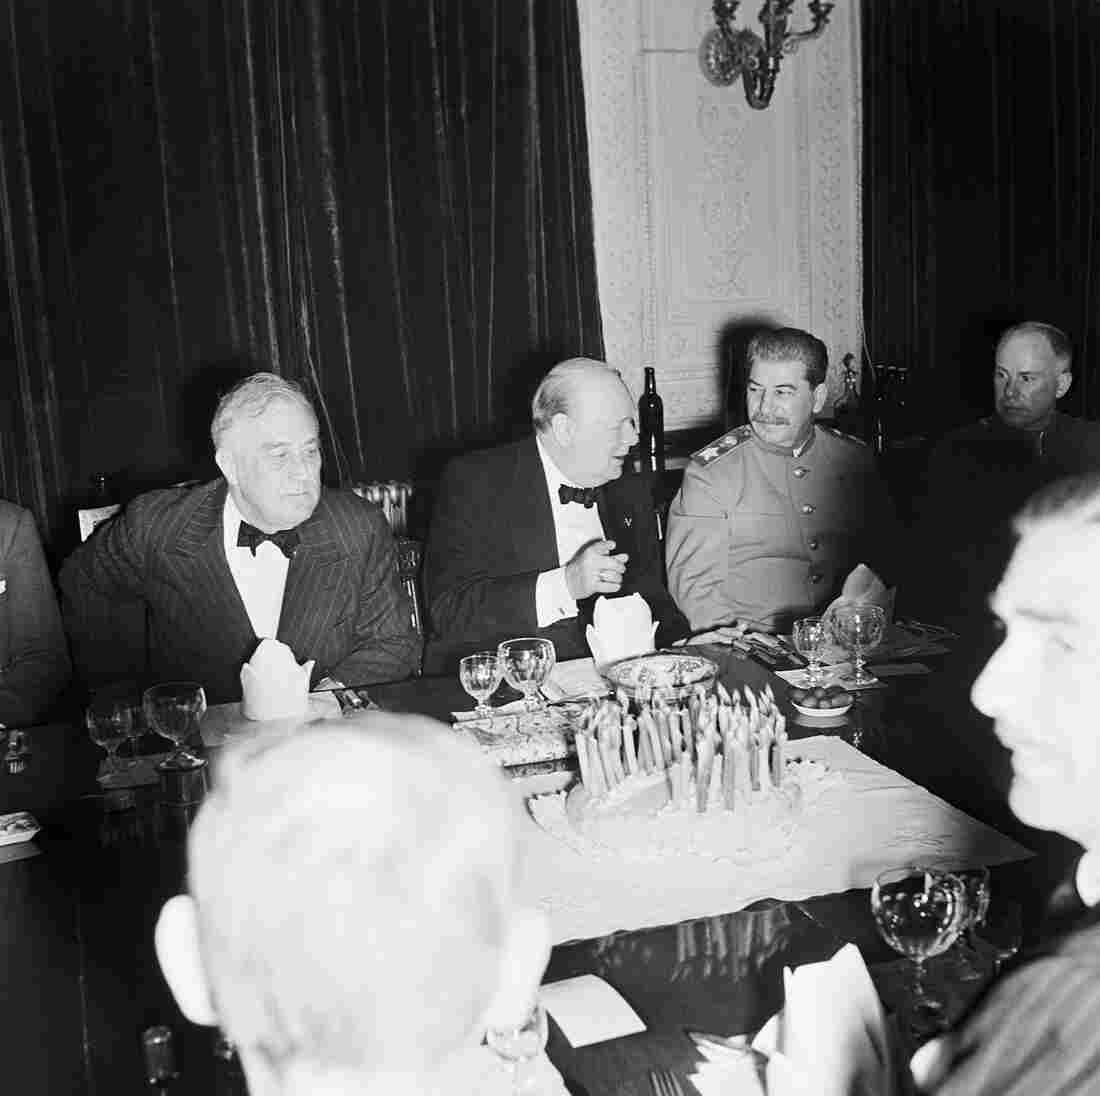 Hitler Couldnt Defeat Churchill But Champagne Nearly Did